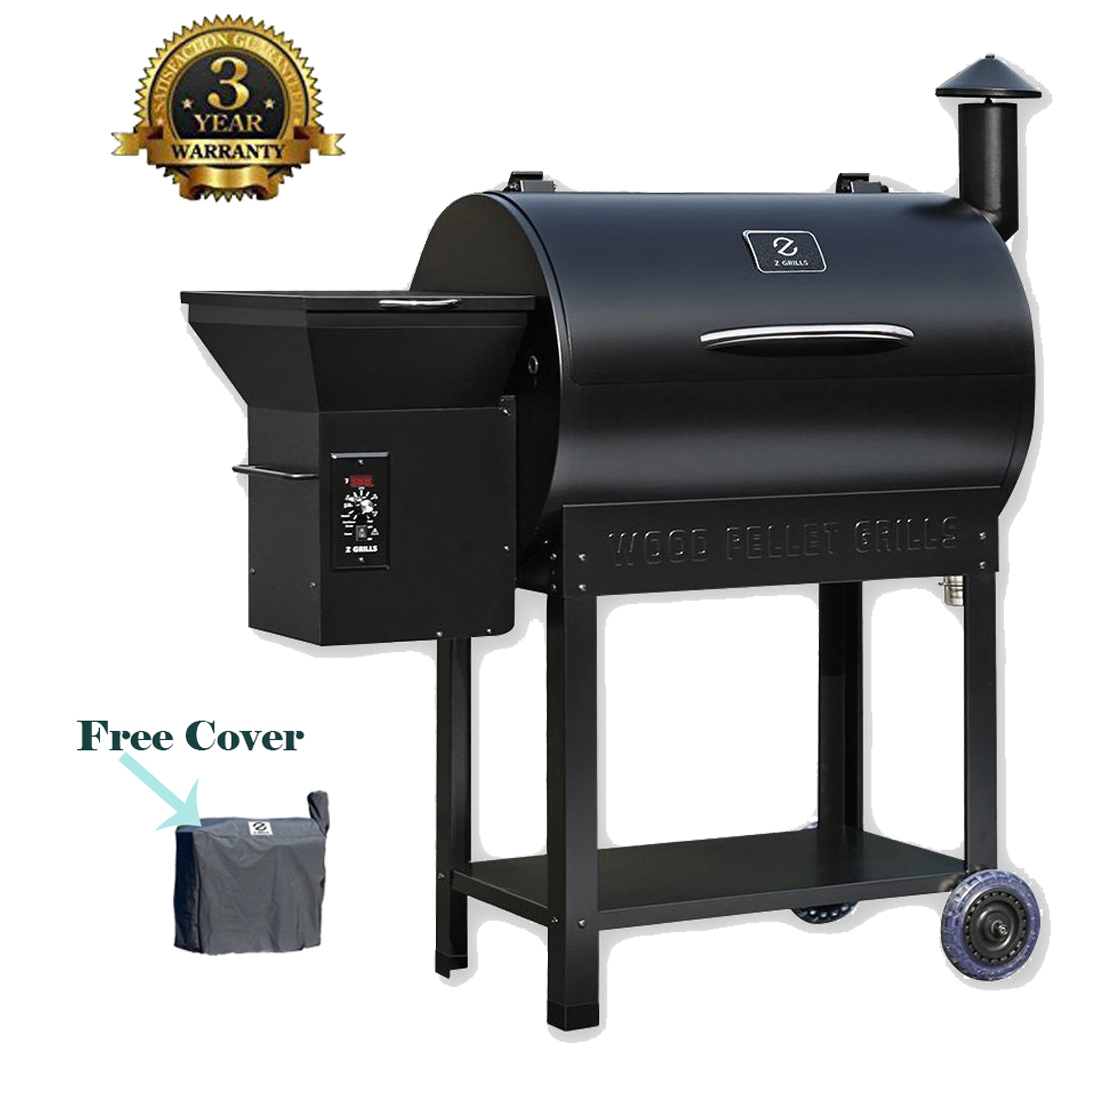 Grills Wood Pellet Grill & Smoker with Patio Cover, 7 in 1- Grill,700 Cooking Area, Roast, Sear, Bake,Smoke, Braise and BBQ with Electric Digital Controls for Outdoor,Garden